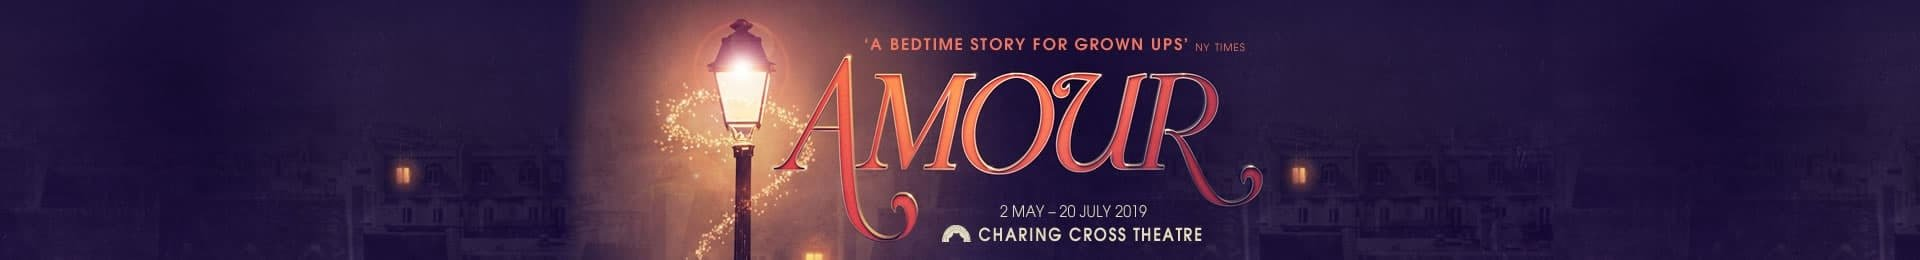 Amour banner image